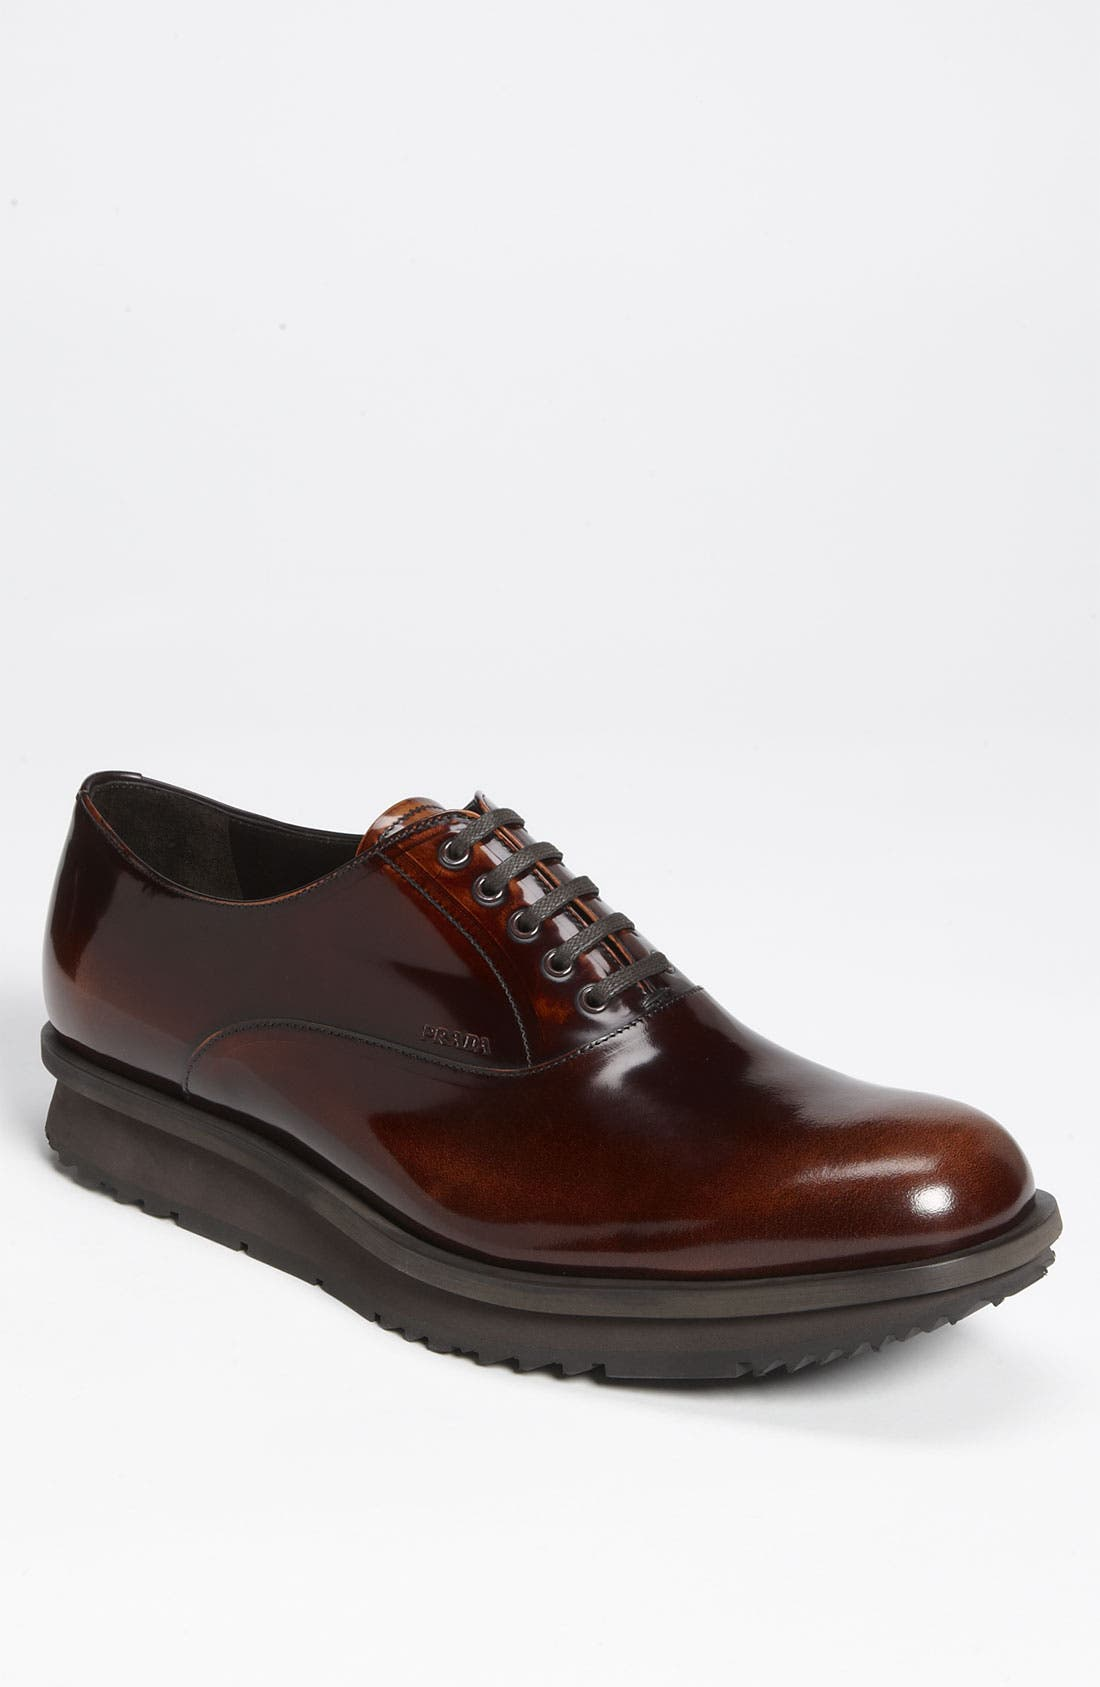 Main Image - Prada Double Sole Oxford